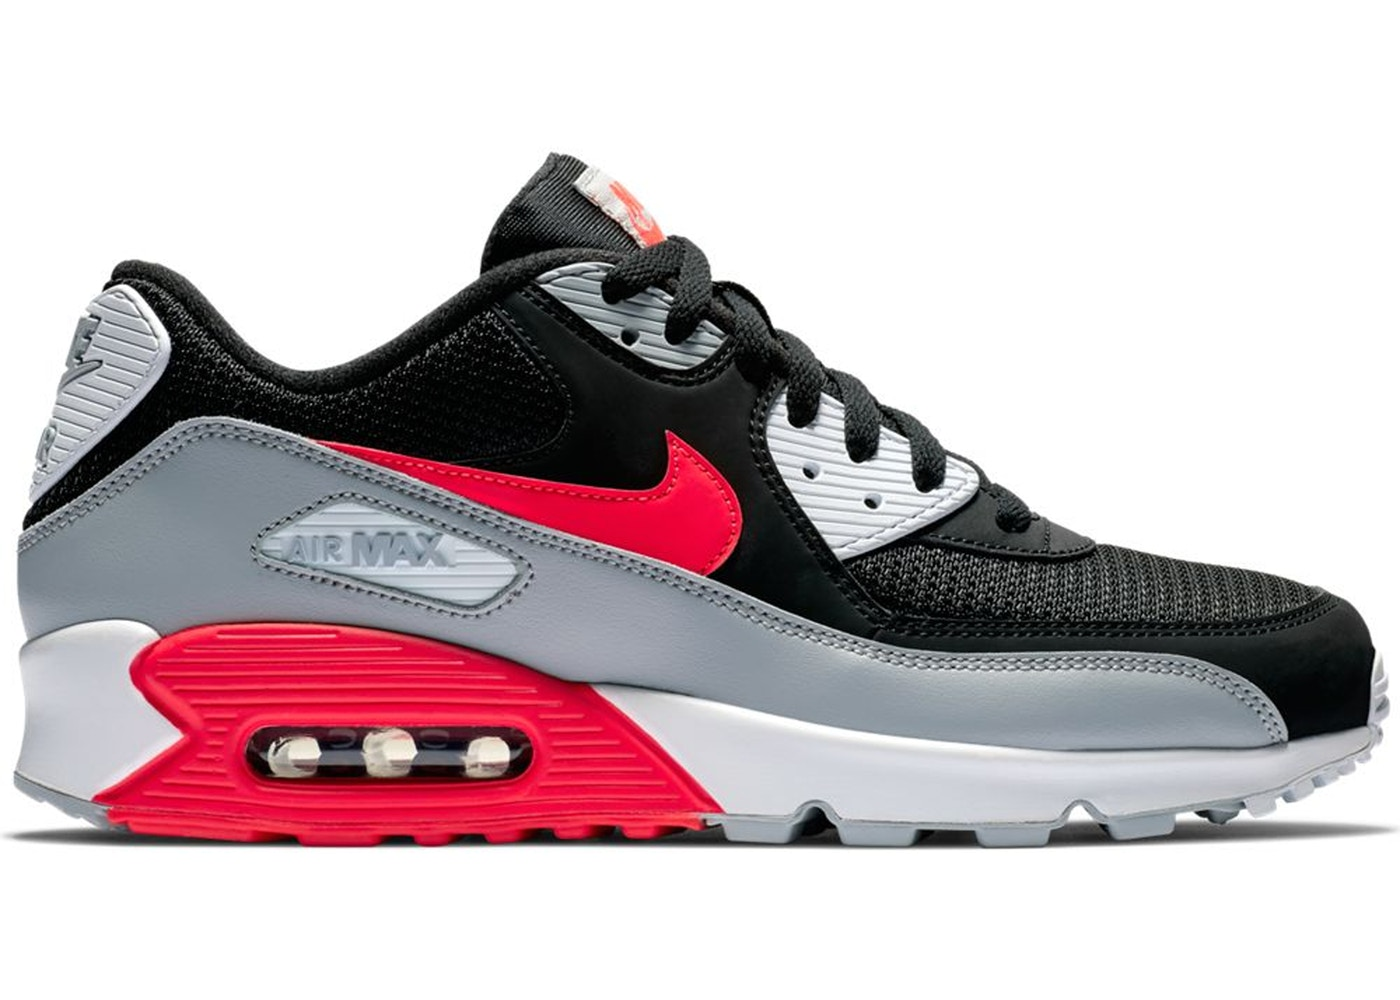 Air Max 90 Black Bright Crimson